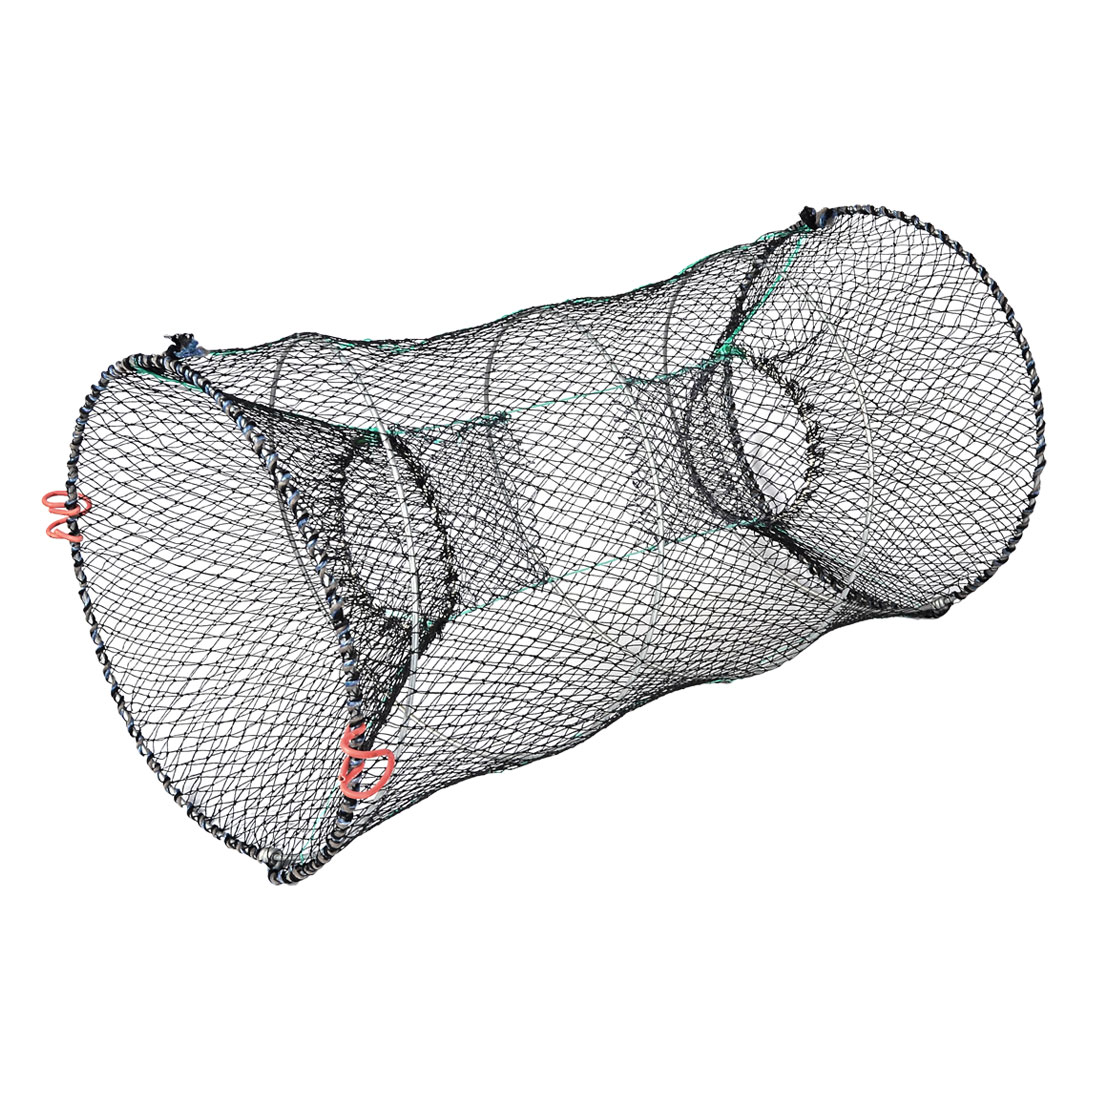 Crab Crawfish Shrimp Foldable Black Green Fishing Keep Net 23.6""